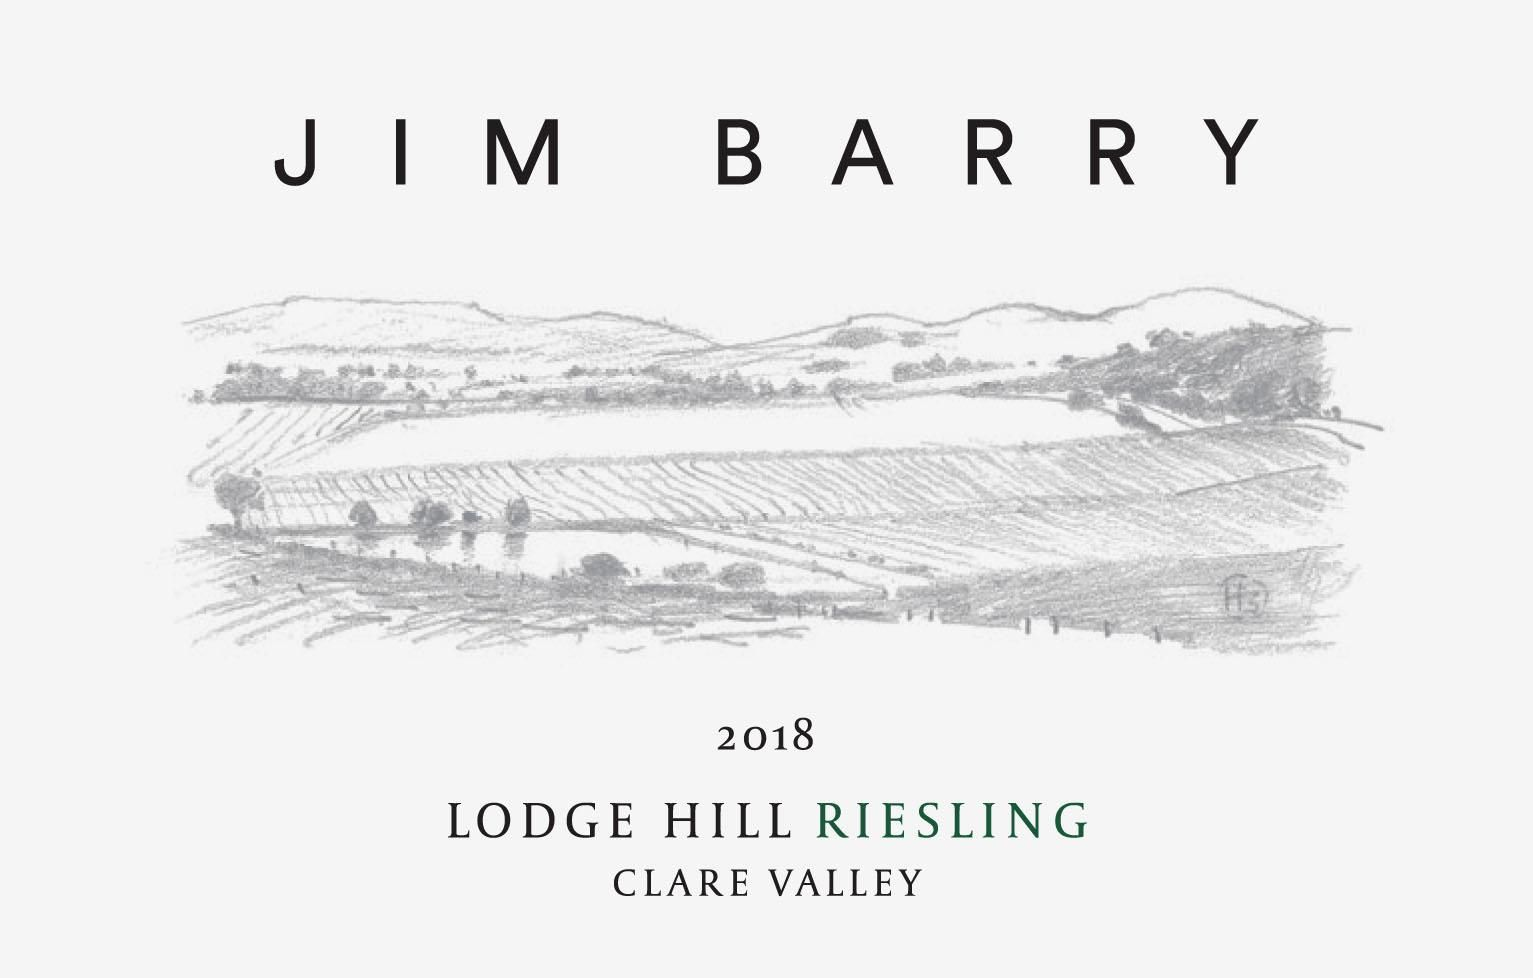 Jim Barry Lodge Hill Riesling 2018 Front Label